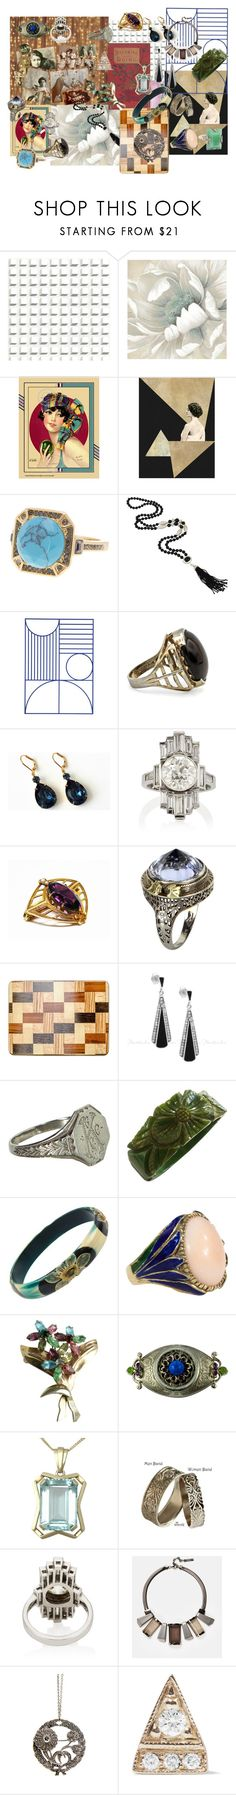 """""""Art Deco Jewelry"""" by kendrickquinn ❤ liked on Polyvore featuring Cole & Son, Ariella Collection, ferm LIVING, Vintage, Boucheron, Lafayette 148 New York and Jennie Kwon"""